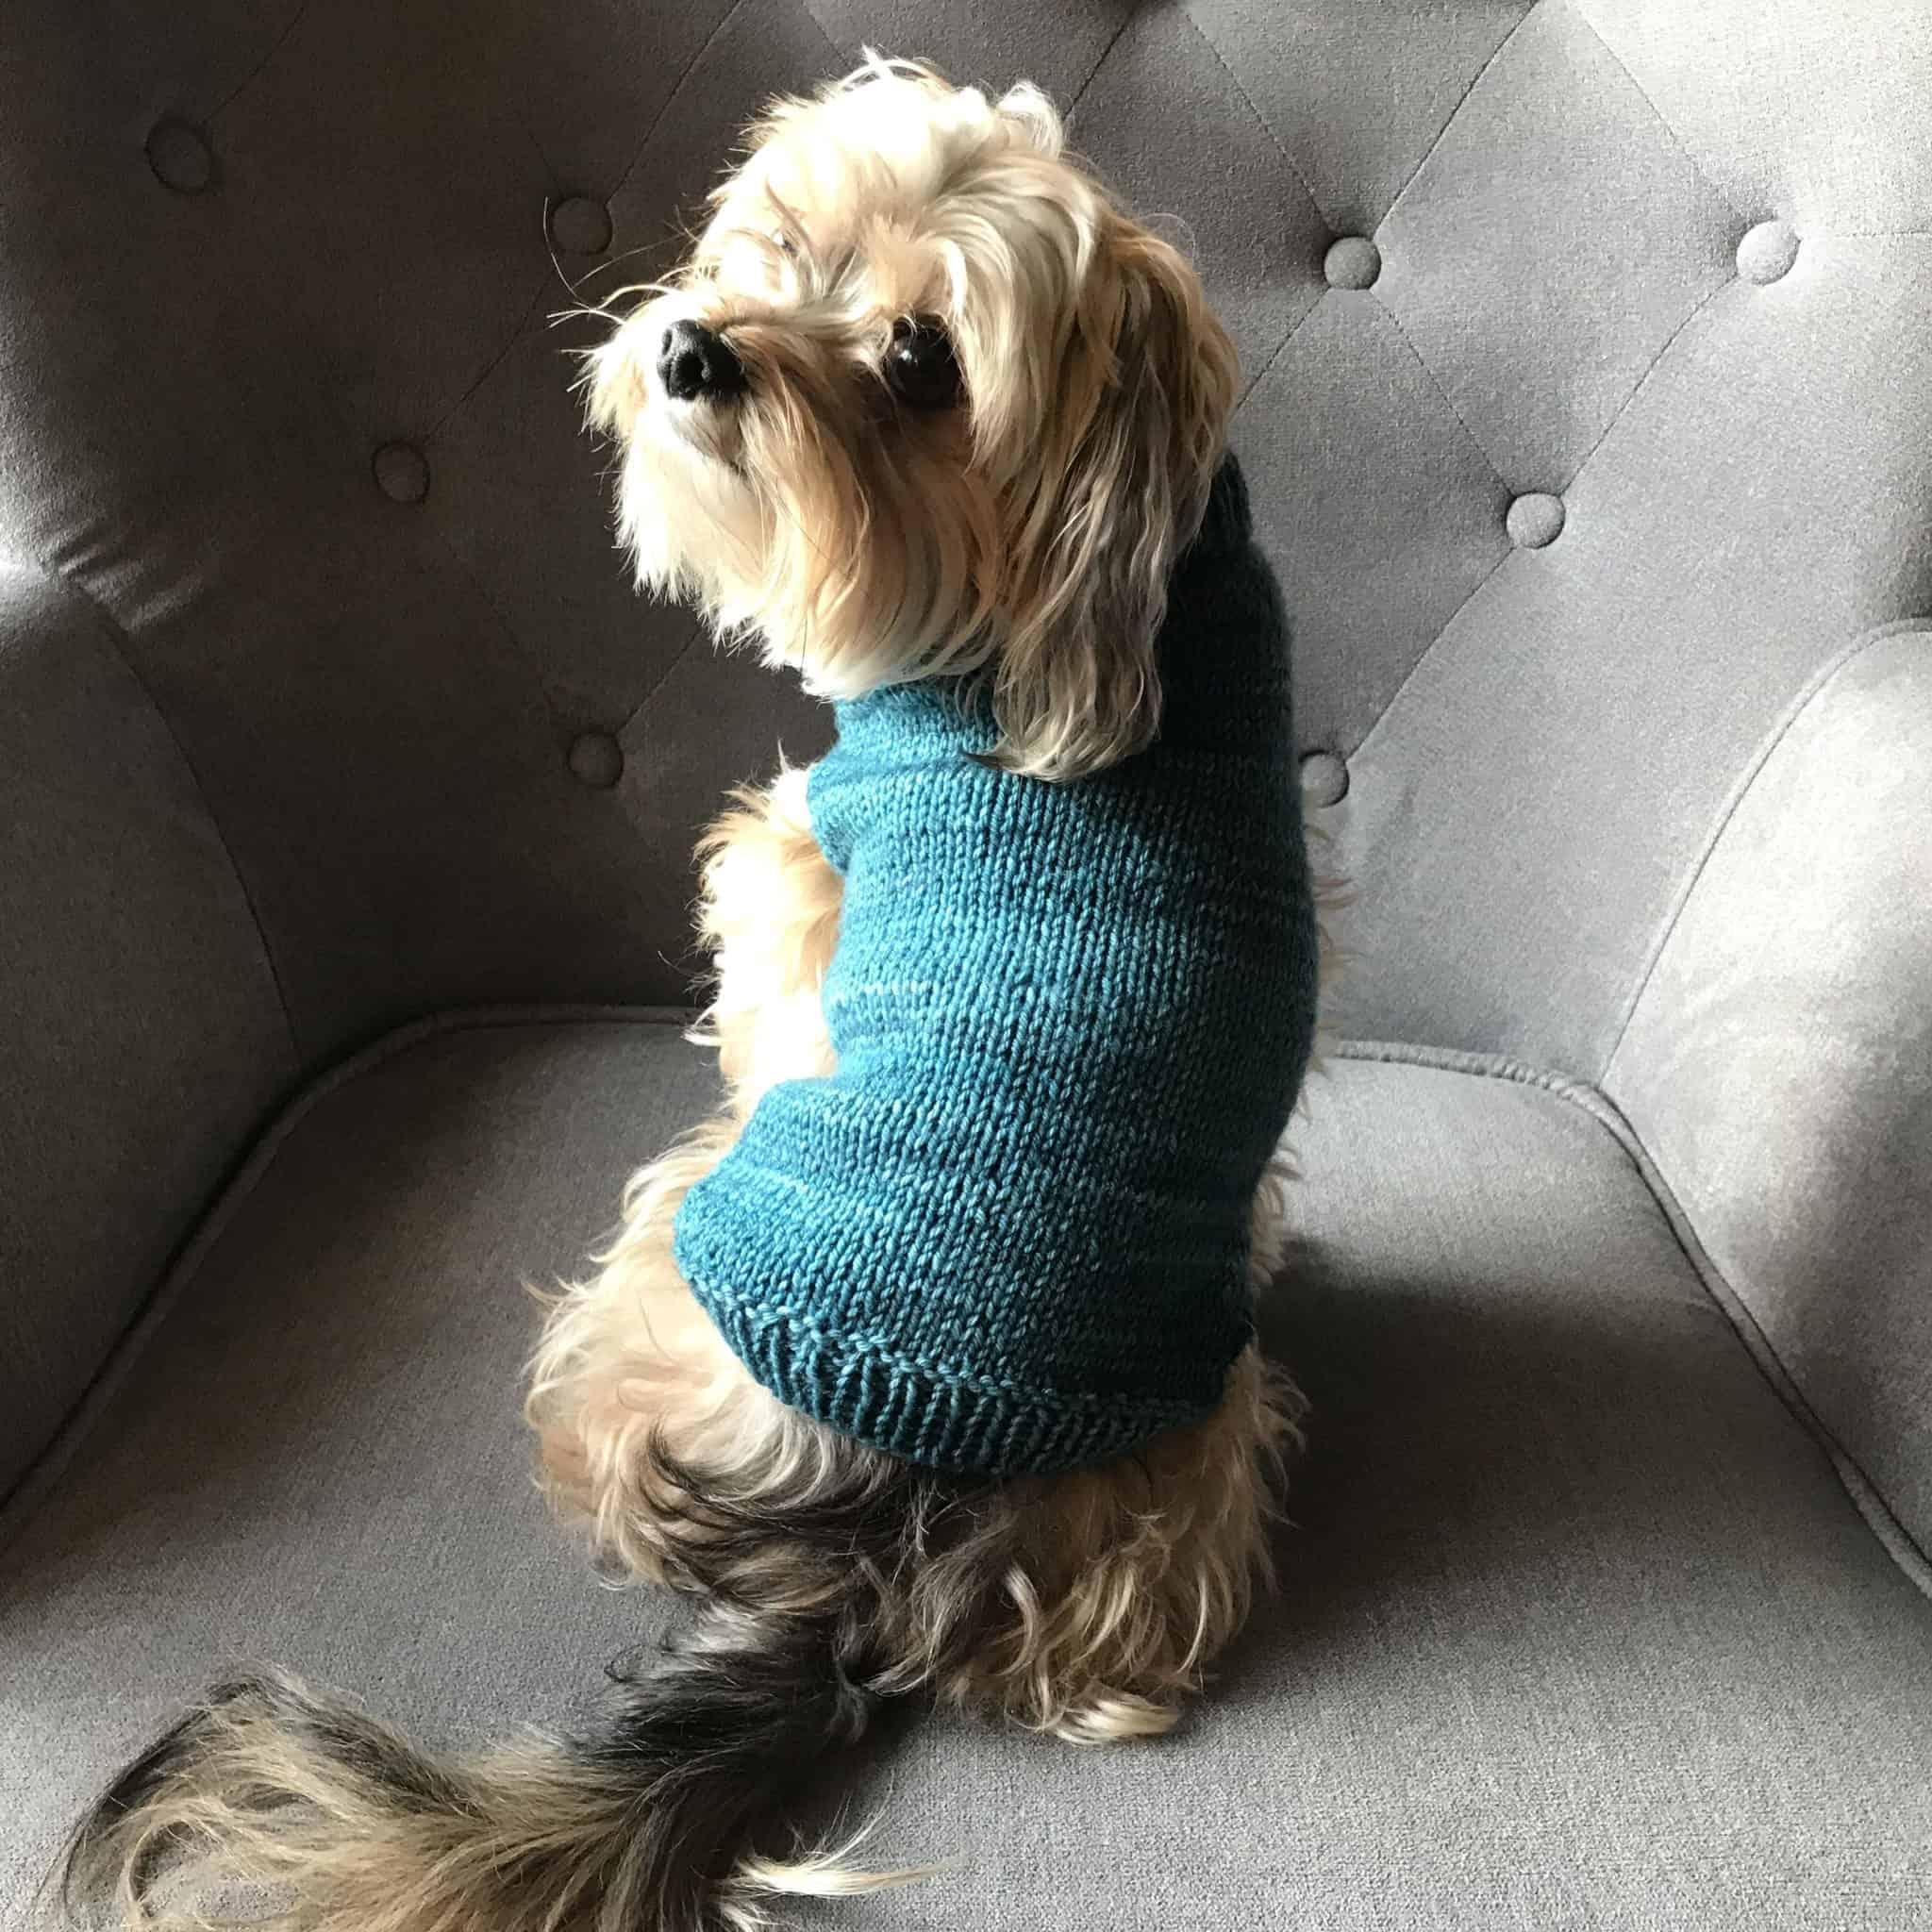 A dog wears a teal sweater.